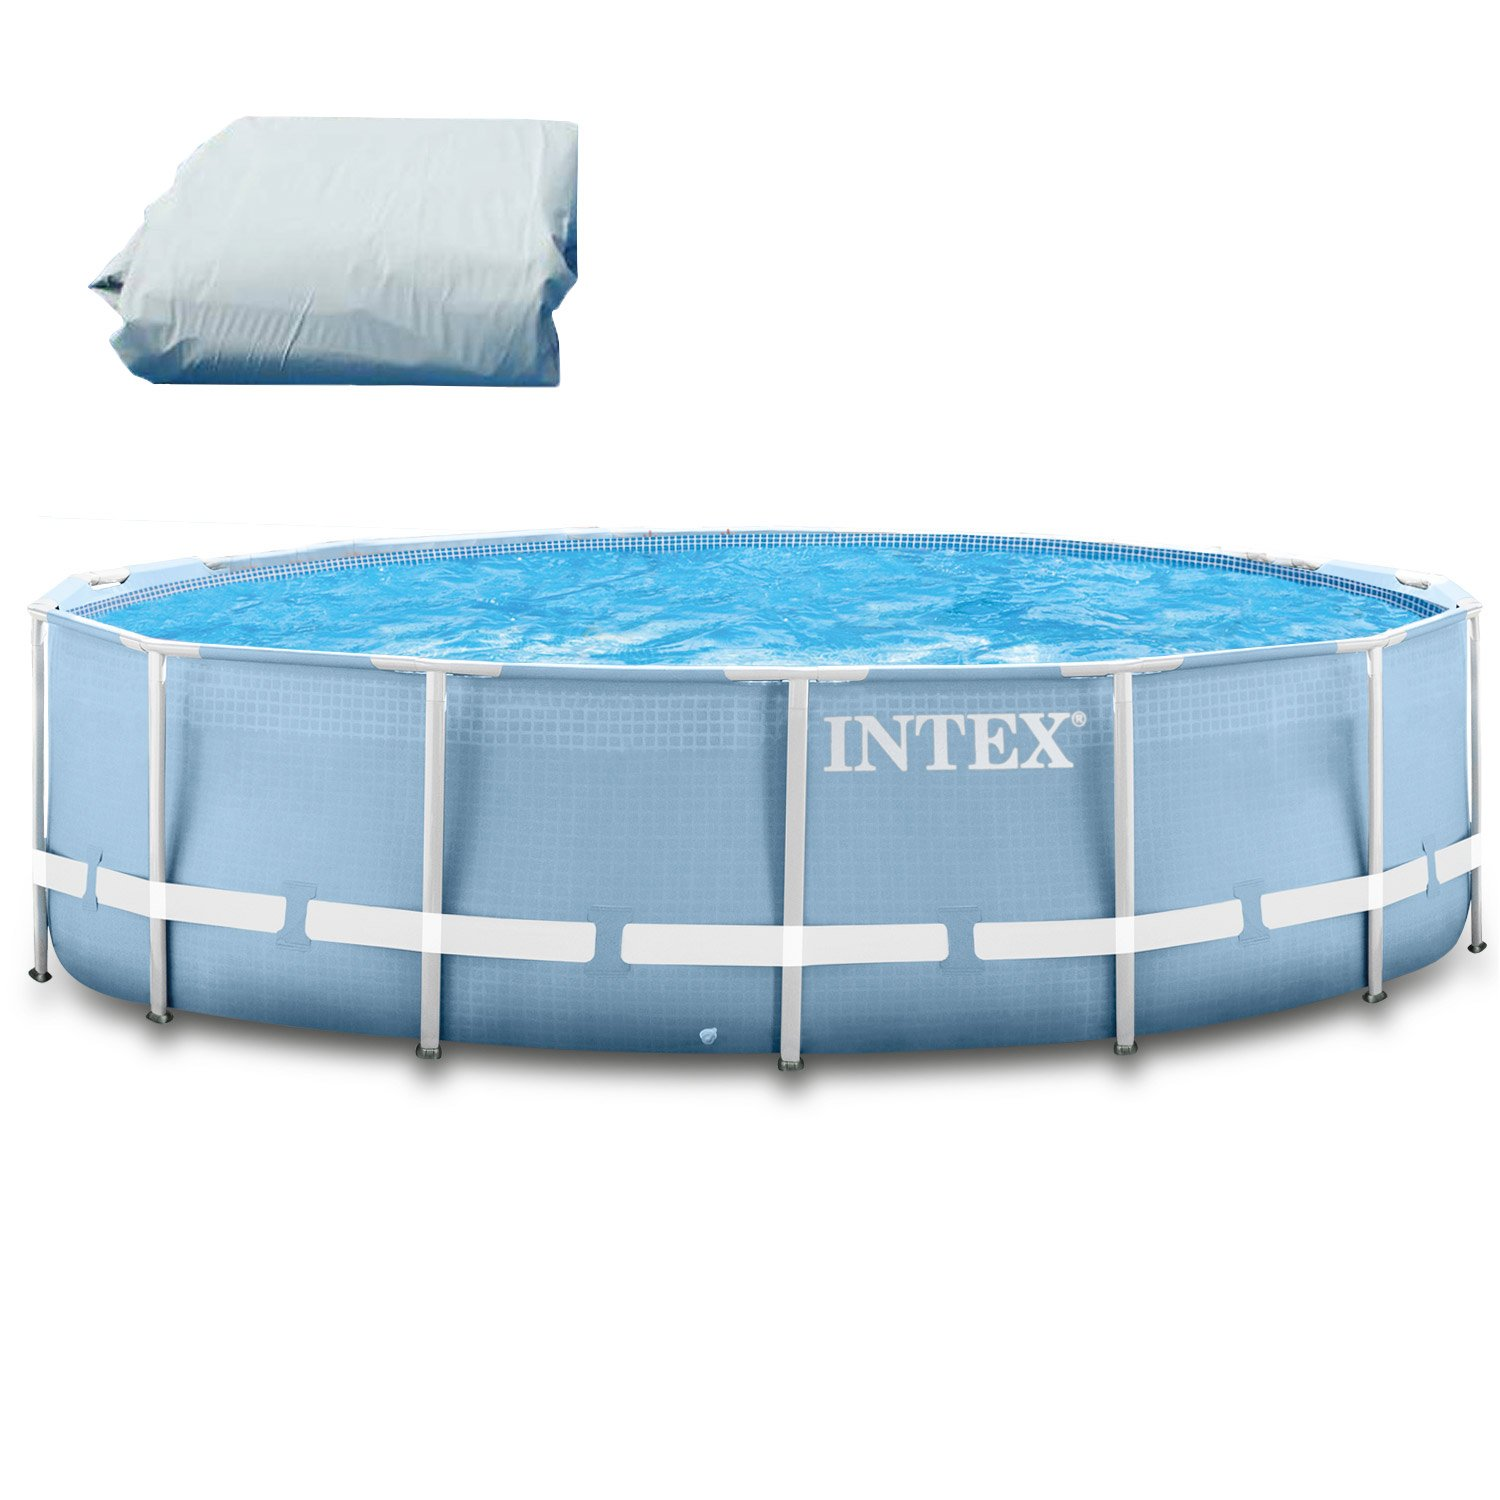 INTEX para Pool 457 x 122 cm Swimming Pool Frame sin varillaje ...